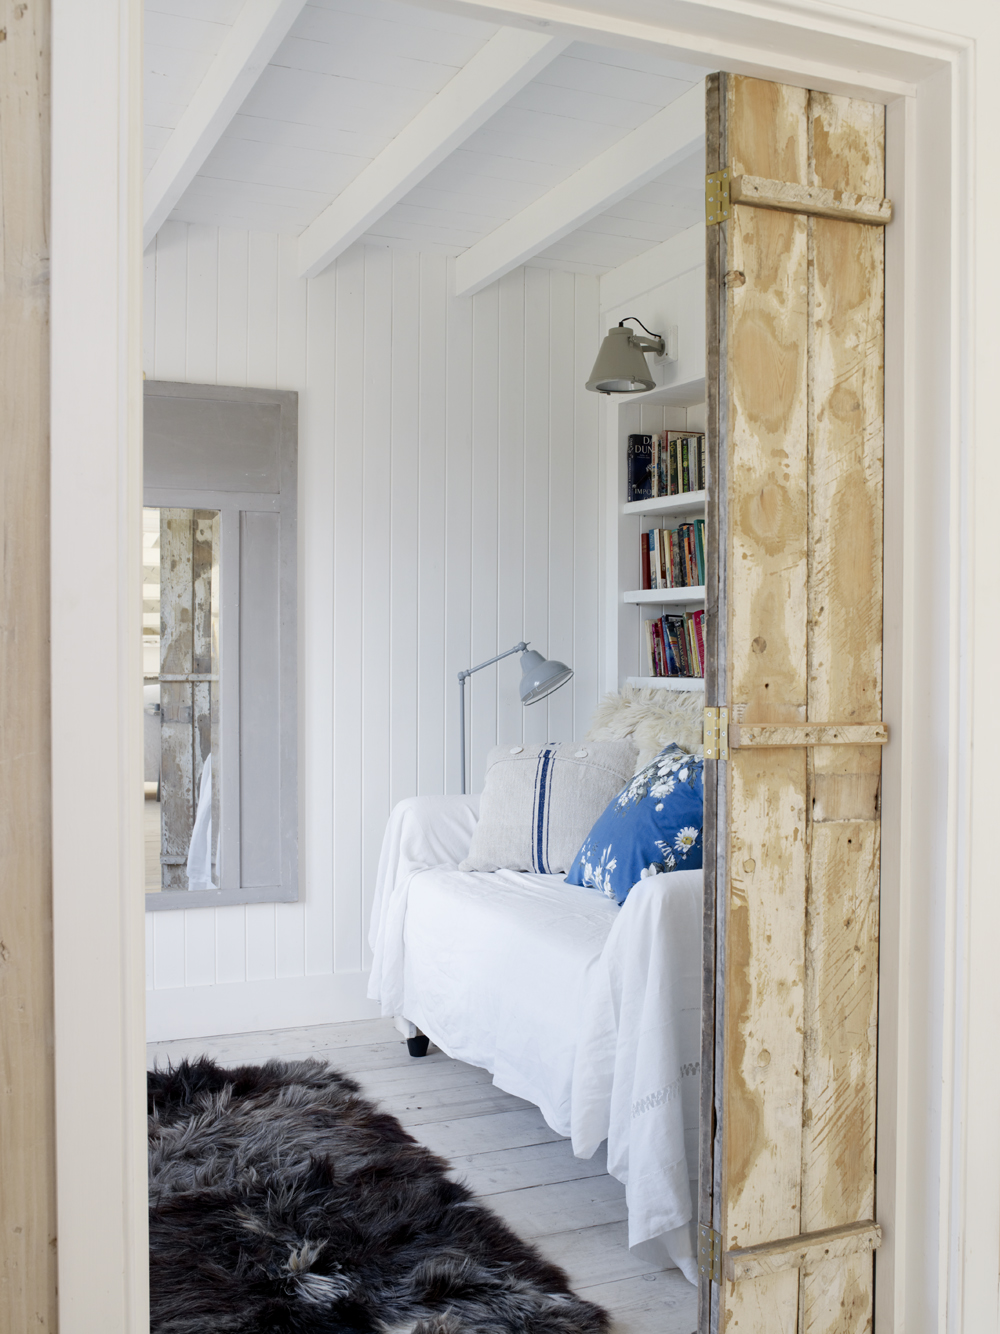 Take a tour of the gorgeous White Cabin in the village of Winchelsea, a beach town in East Sussex, South England. - Rustic Barn Door